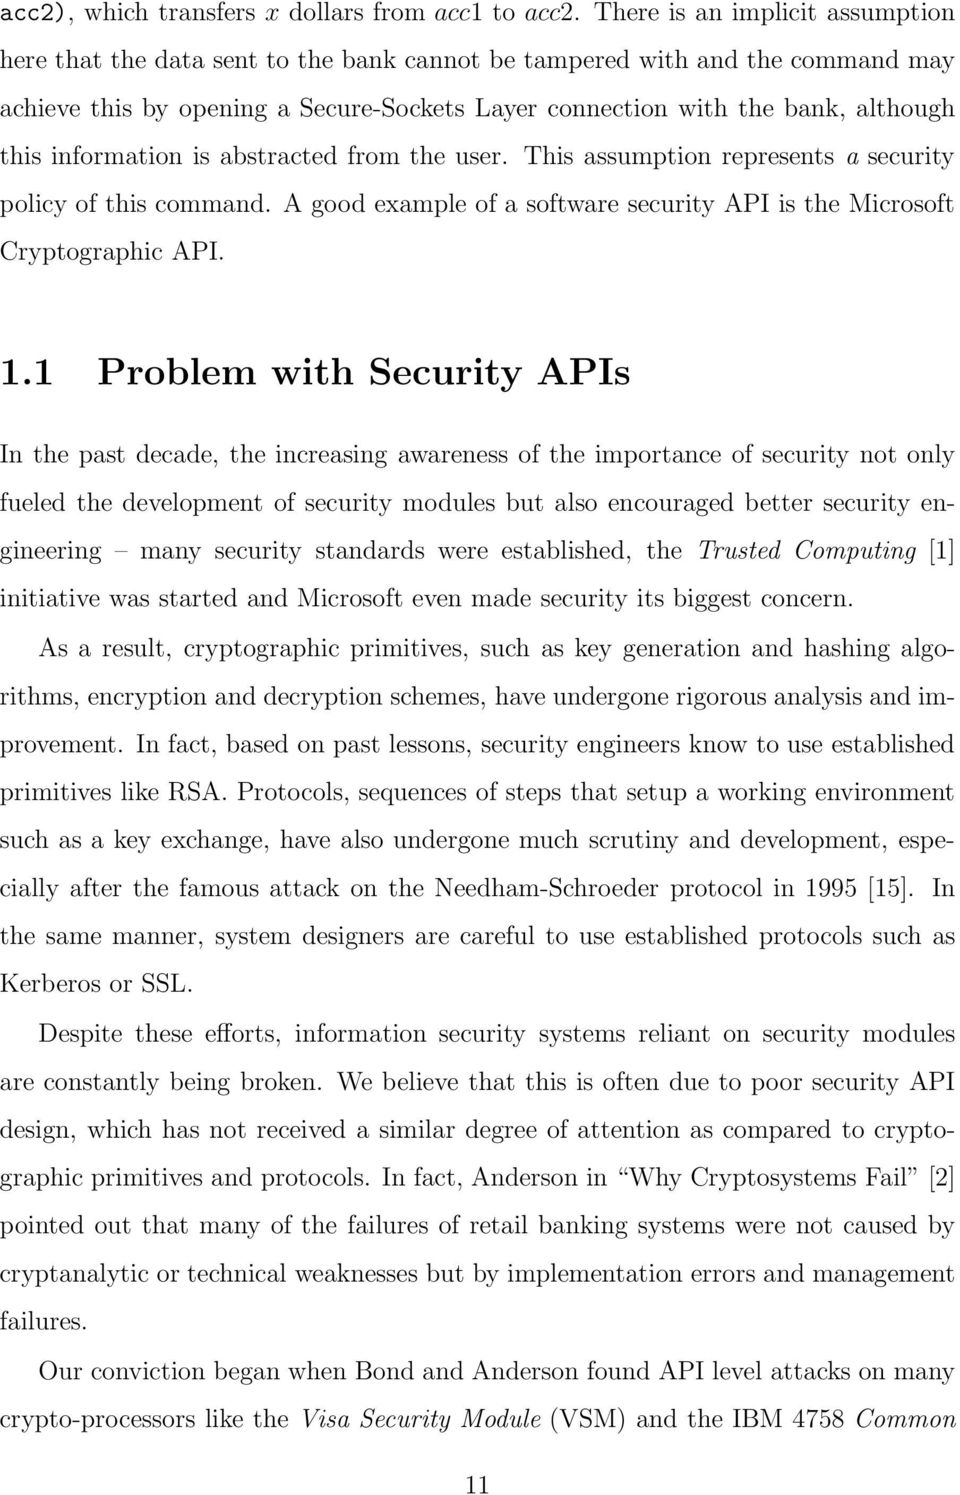 information is abstracted from the user. This assumption represents a security policy of this command. A good example of a software security API is the Microsoft Cryptographic API. 1.